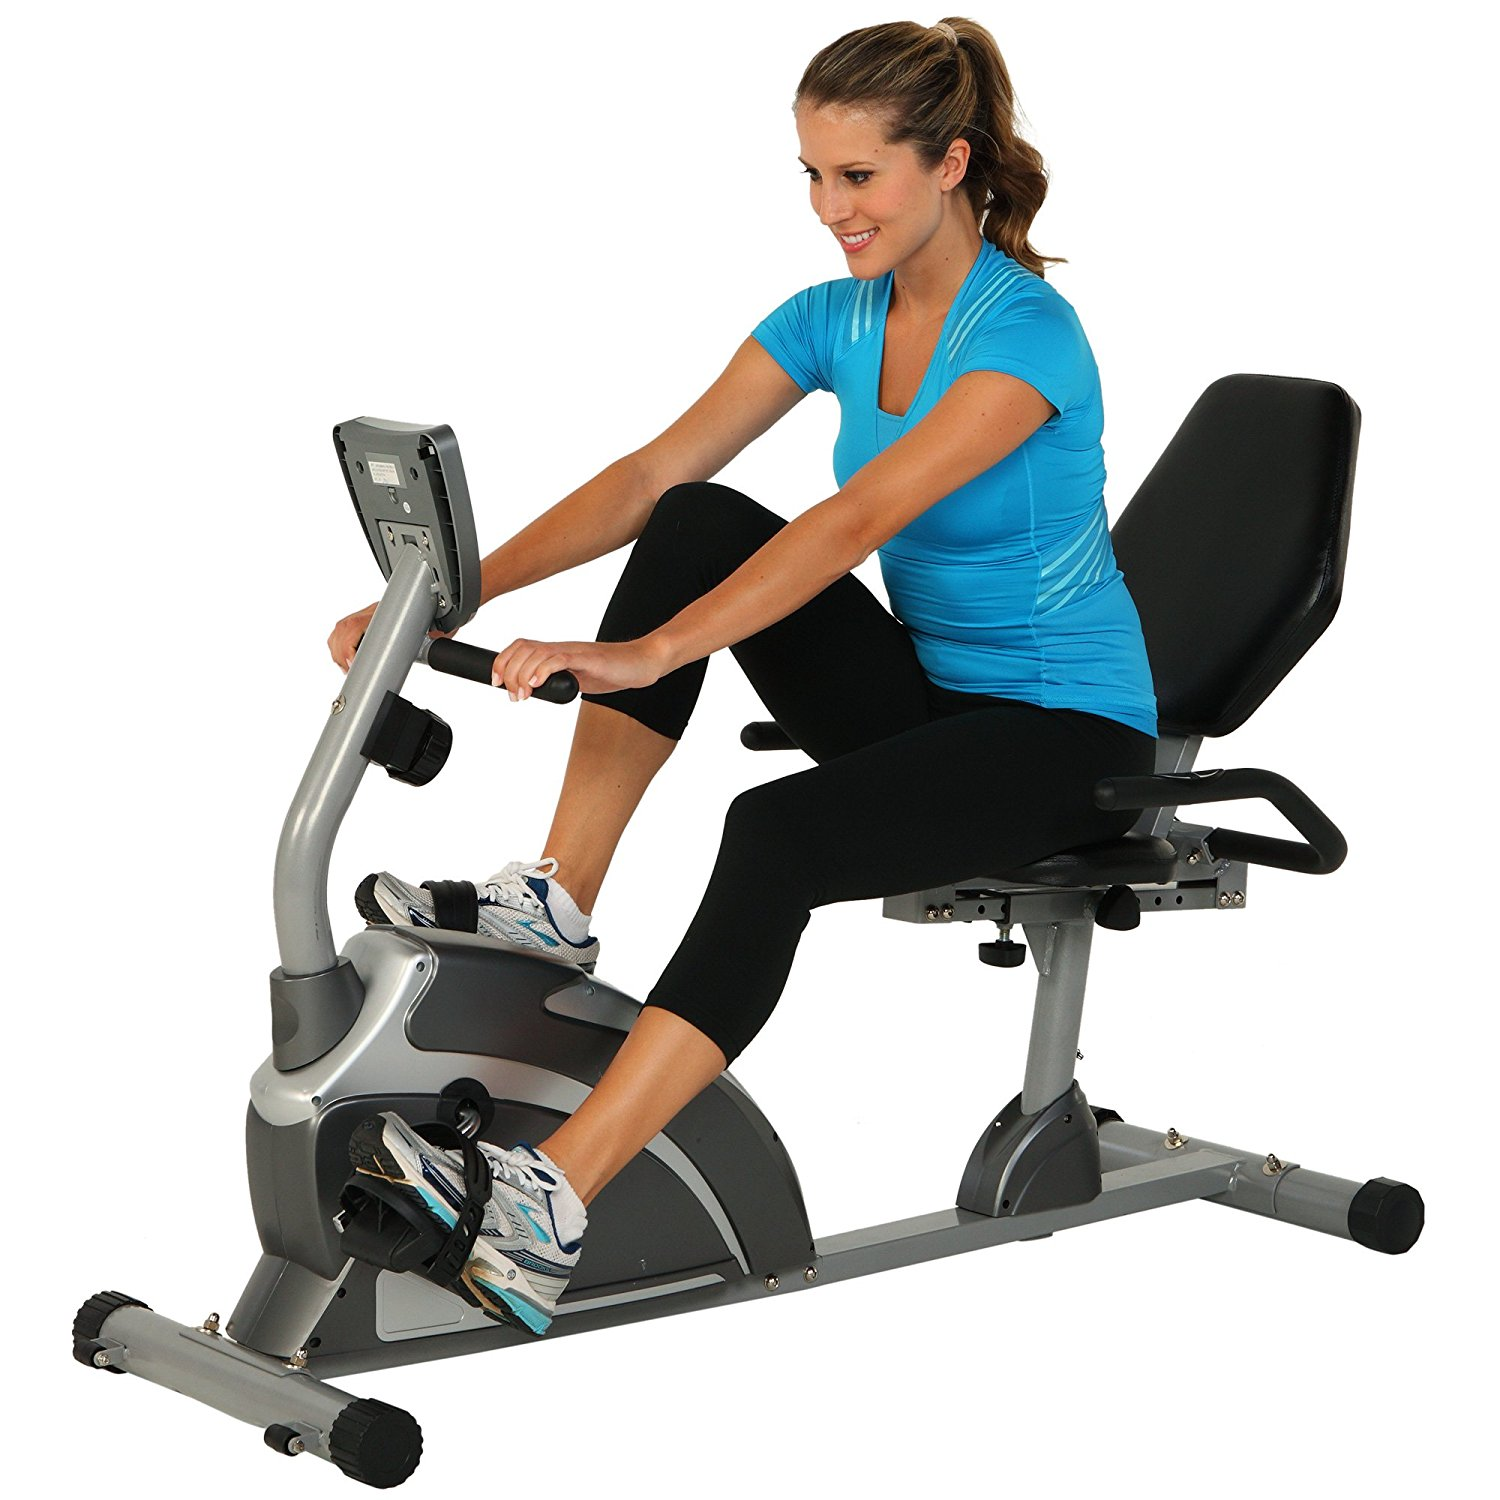 Extended Capacity Recumbent Bike with Pulse